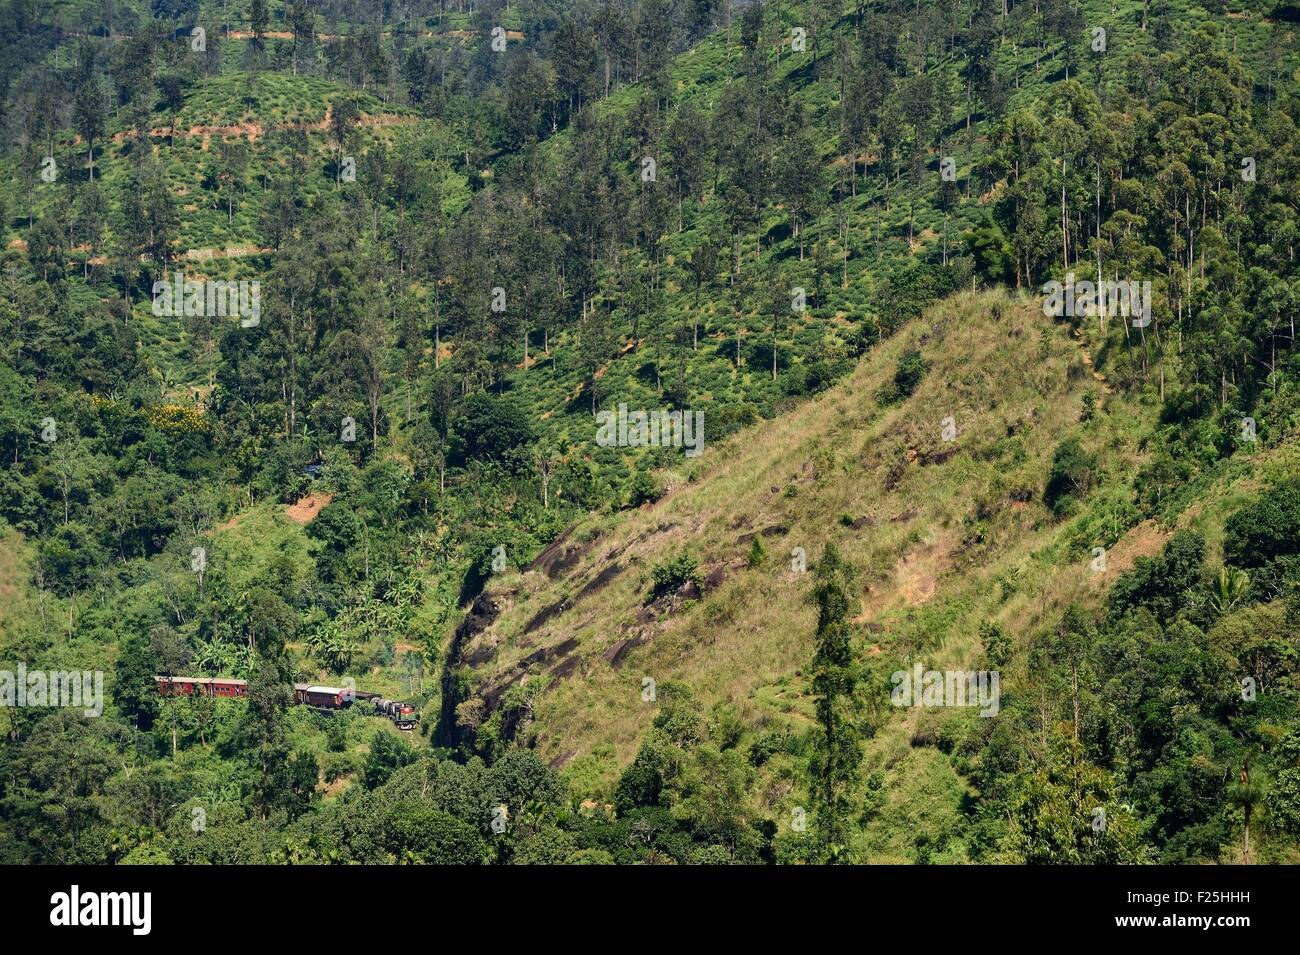 Sri Lanka, Uva Province, train on the railway track that goes through the tea growing hill country next to Ella Stock Photo